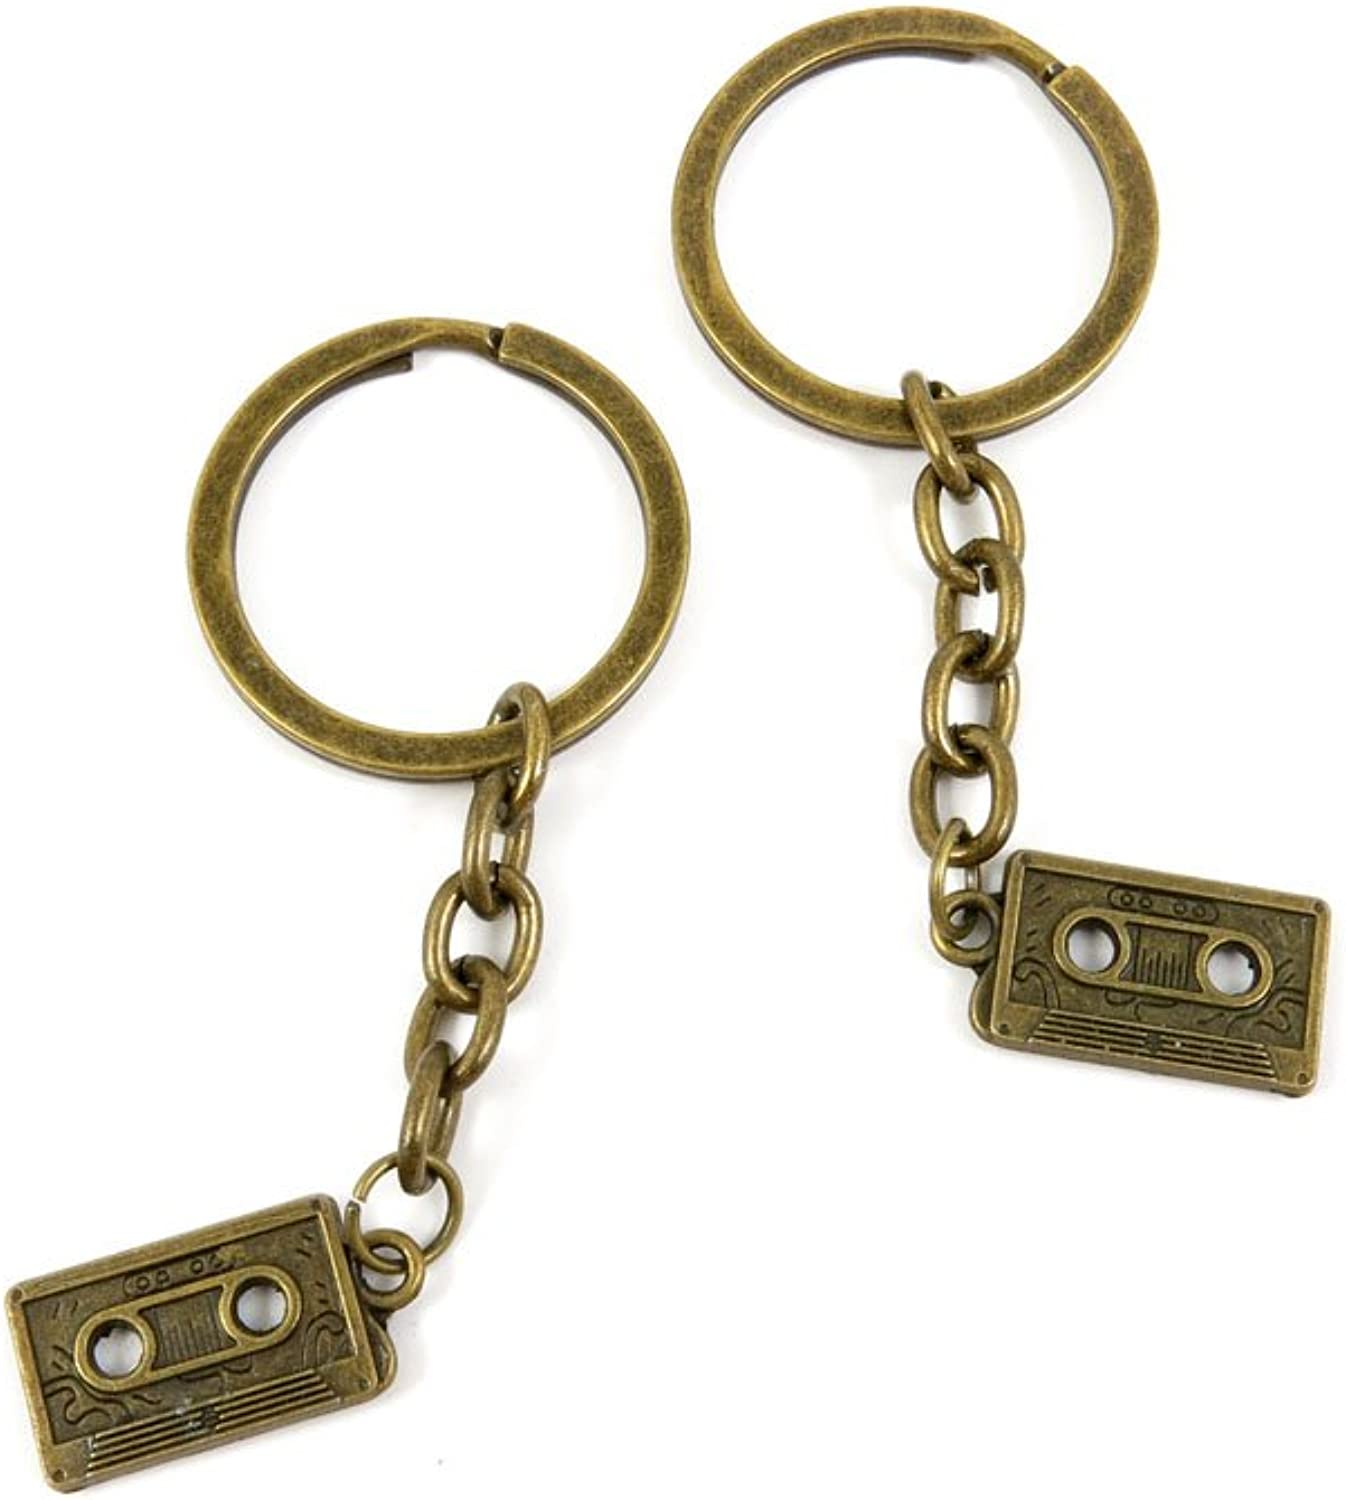 200 Pieces Fashion Jewelry Keyring Keychain Door Car Key Tag Ring Chain Supplier Supply Wholesale Bulk Lots C7UT7 Audio Cassette Tapes